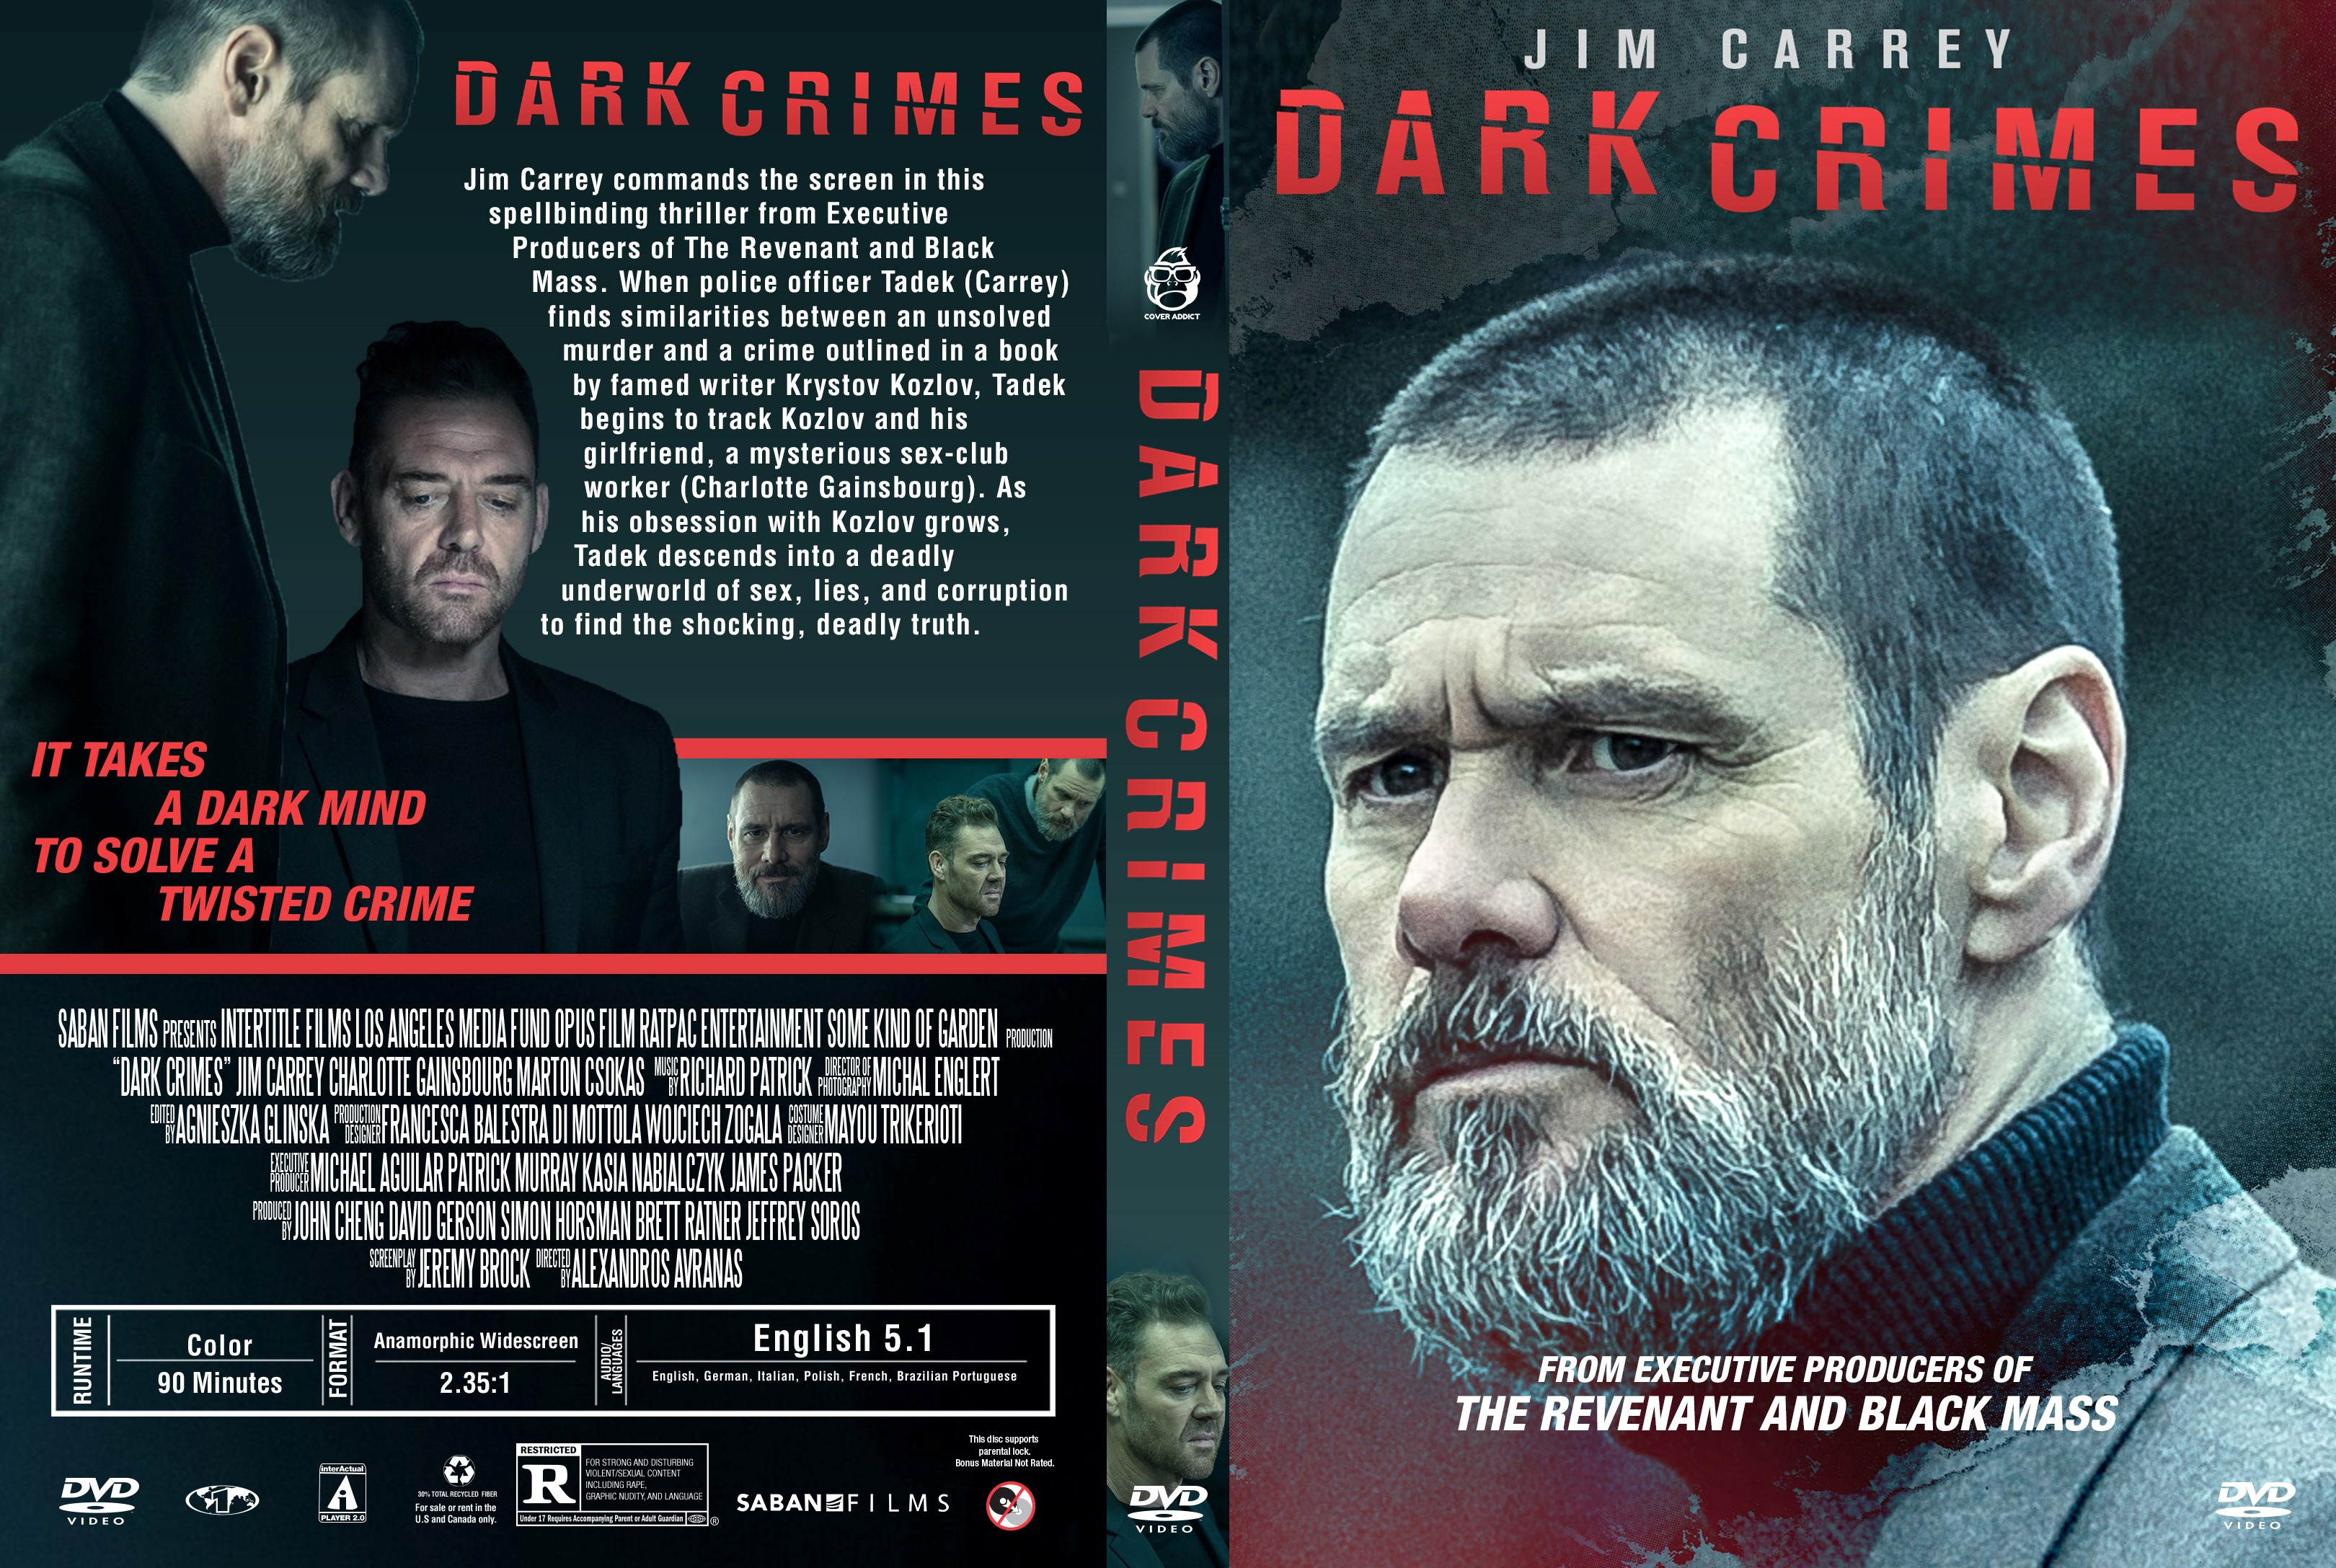 Libros Por Torrent Dark Crimes 2018 Torrent 43 Subtítulos Lapolladesertora